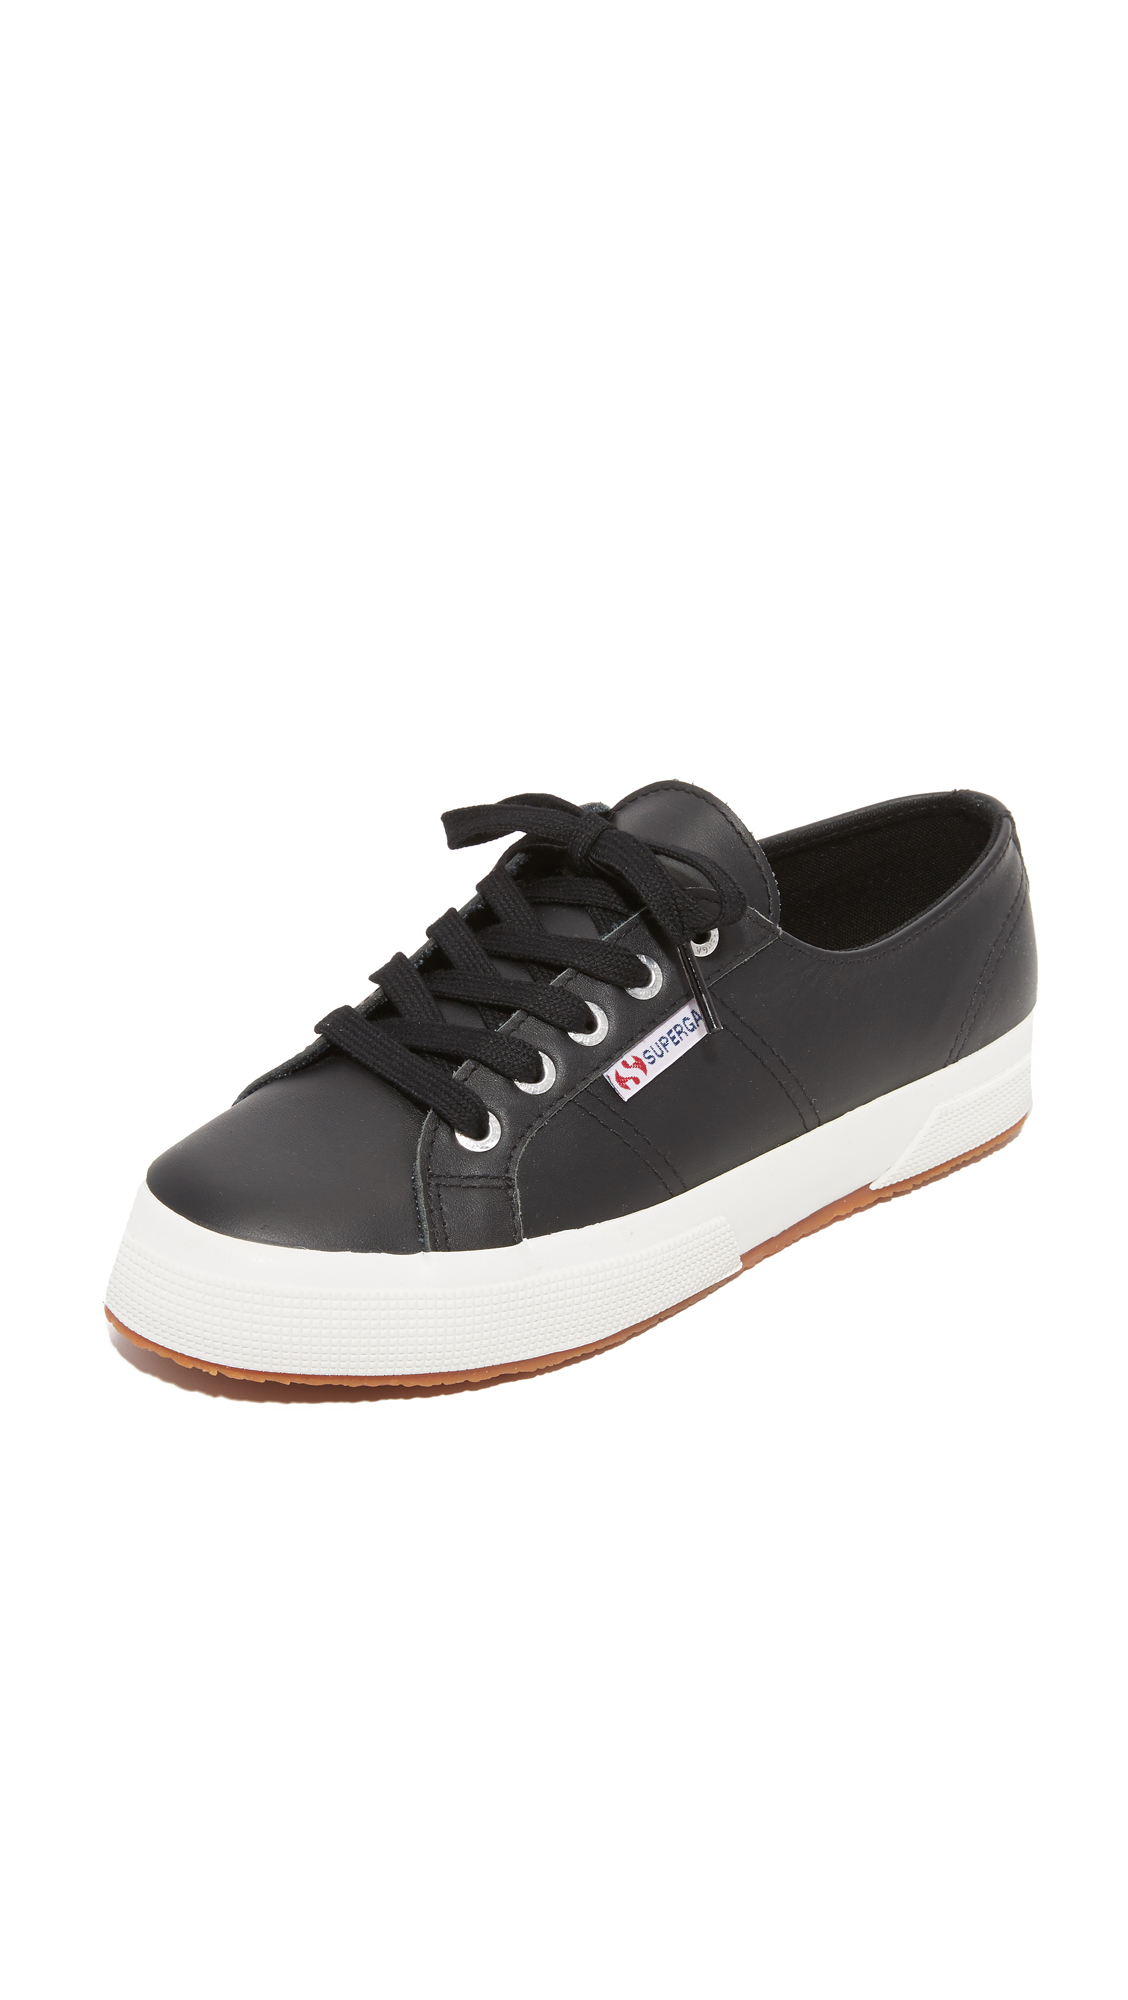 Superga 2750 FGLU Sneakers - Black